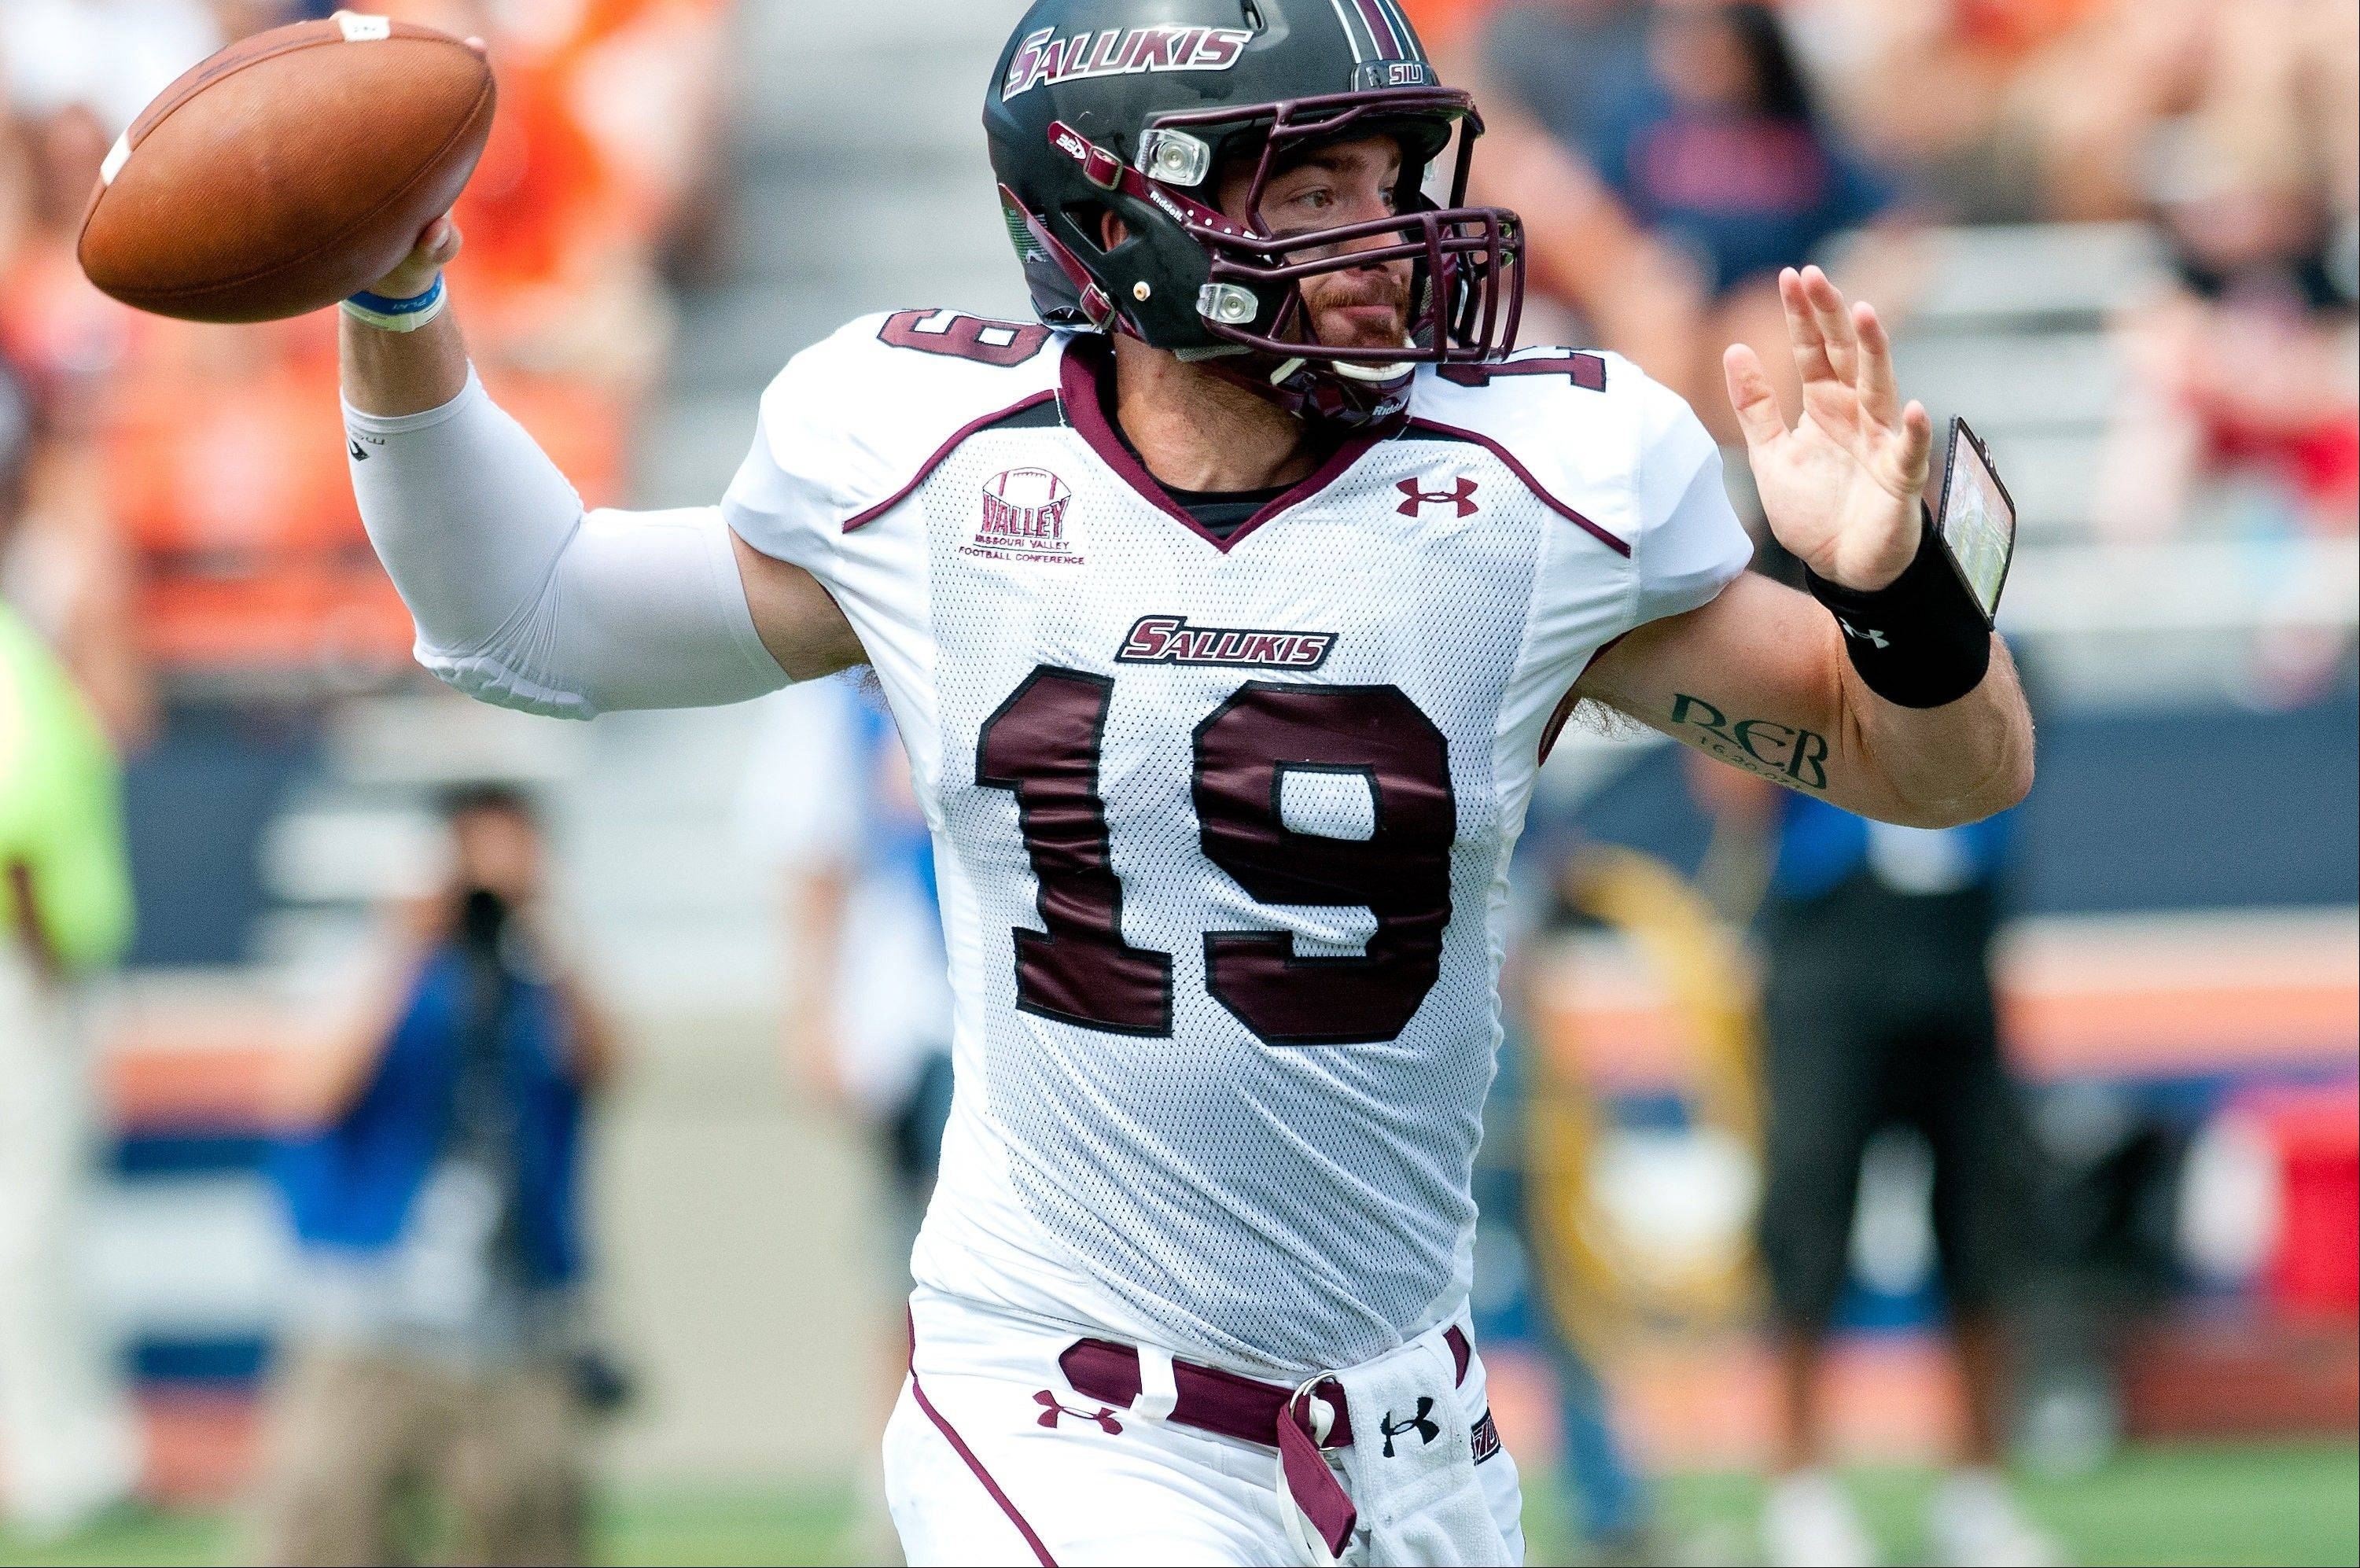 Scheelhaase, Illini survive SIU rally, win 42-34